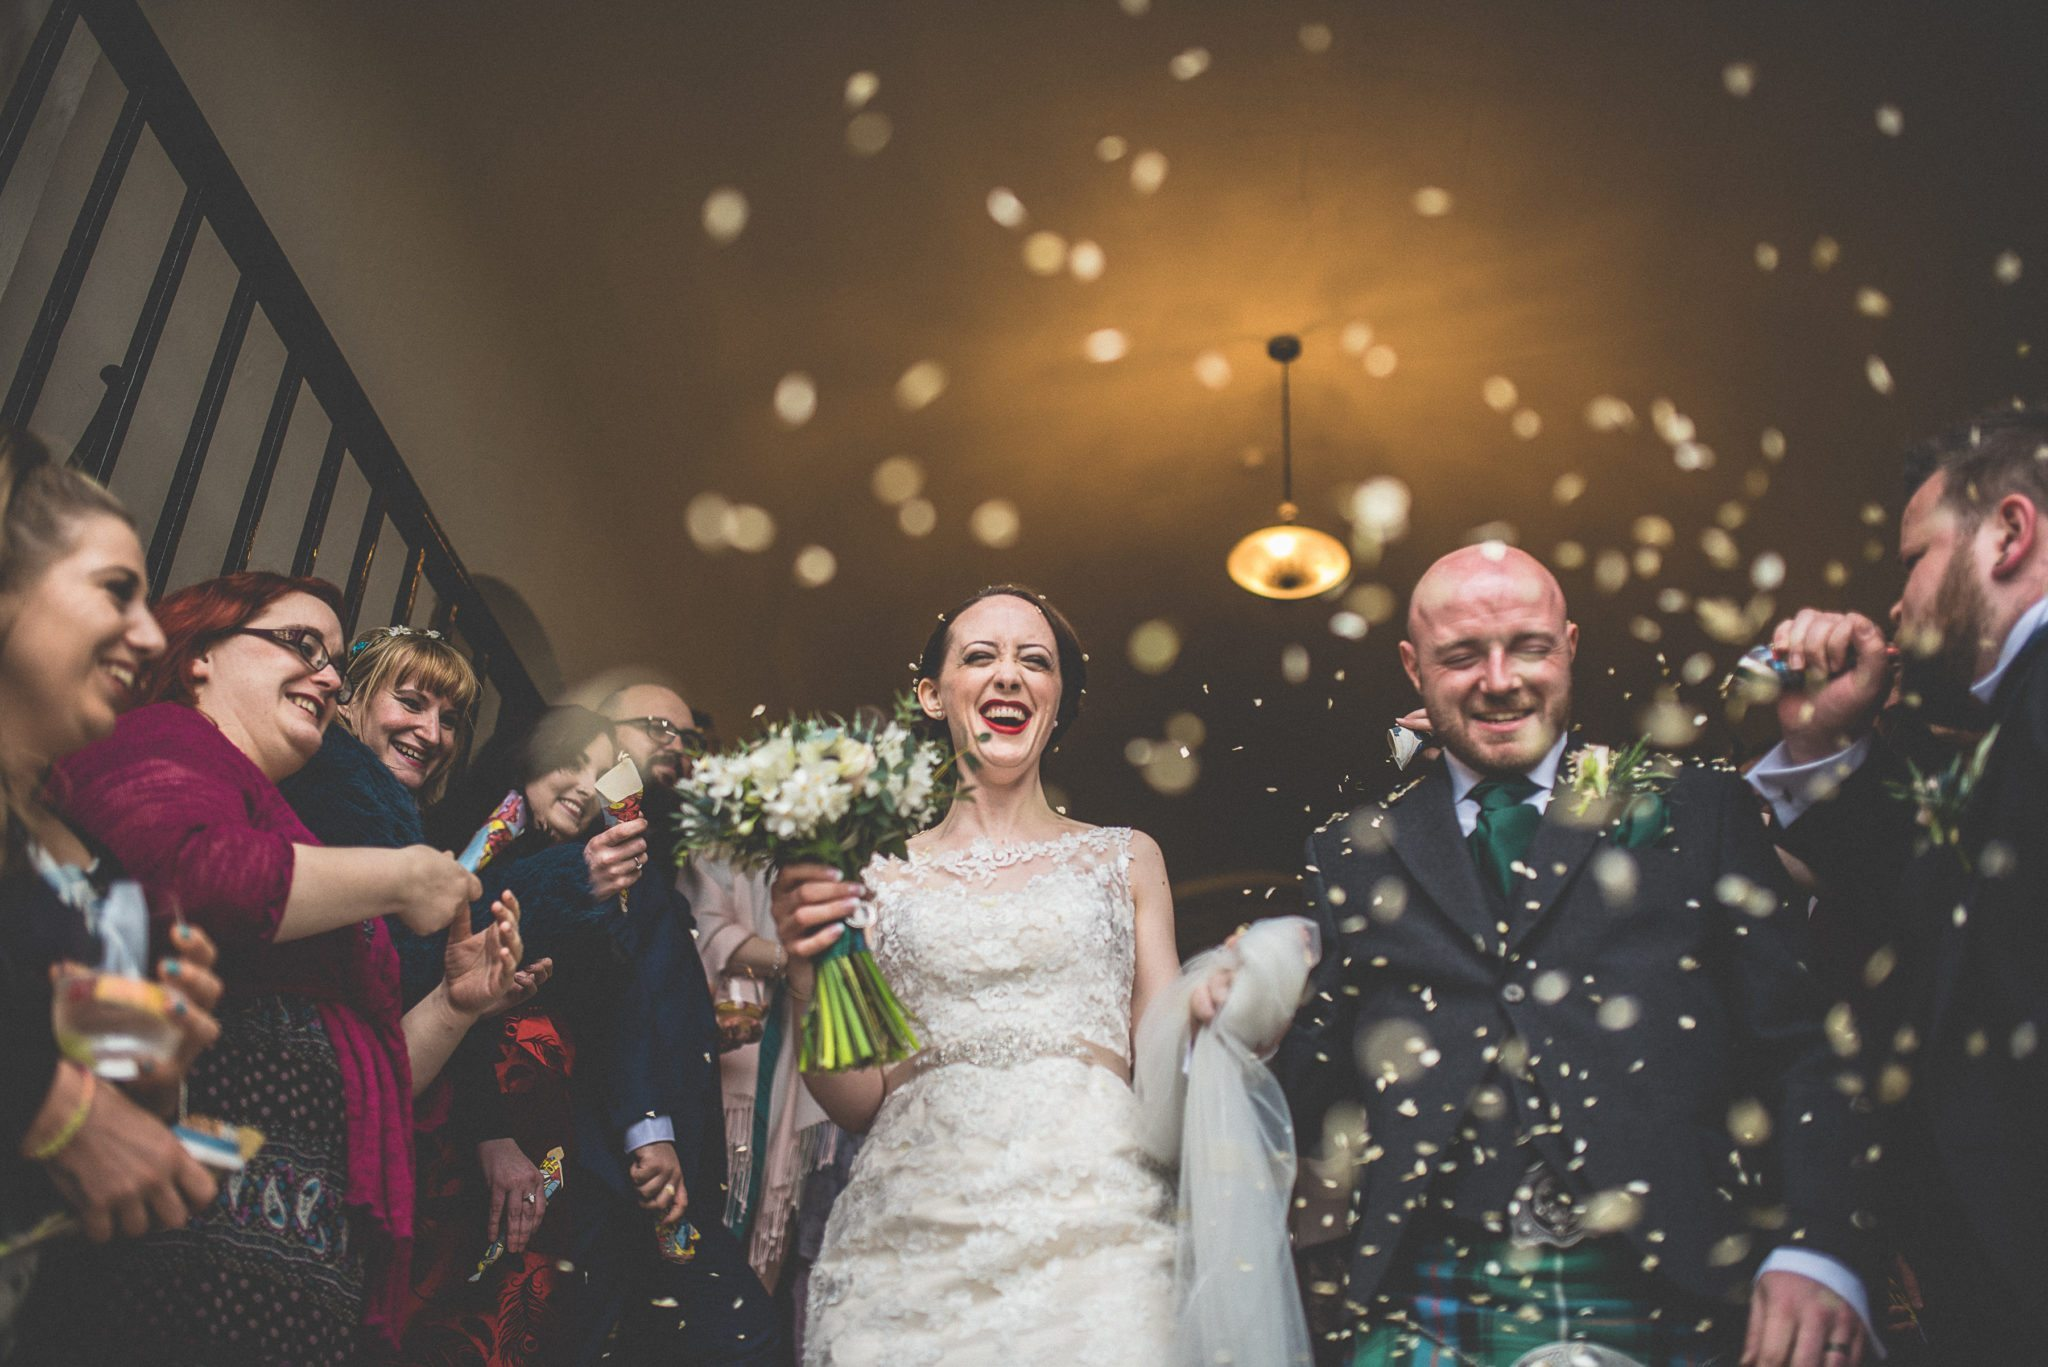 The bride and groom walk down the staircase in a shower of confetti at the Bishops Palace